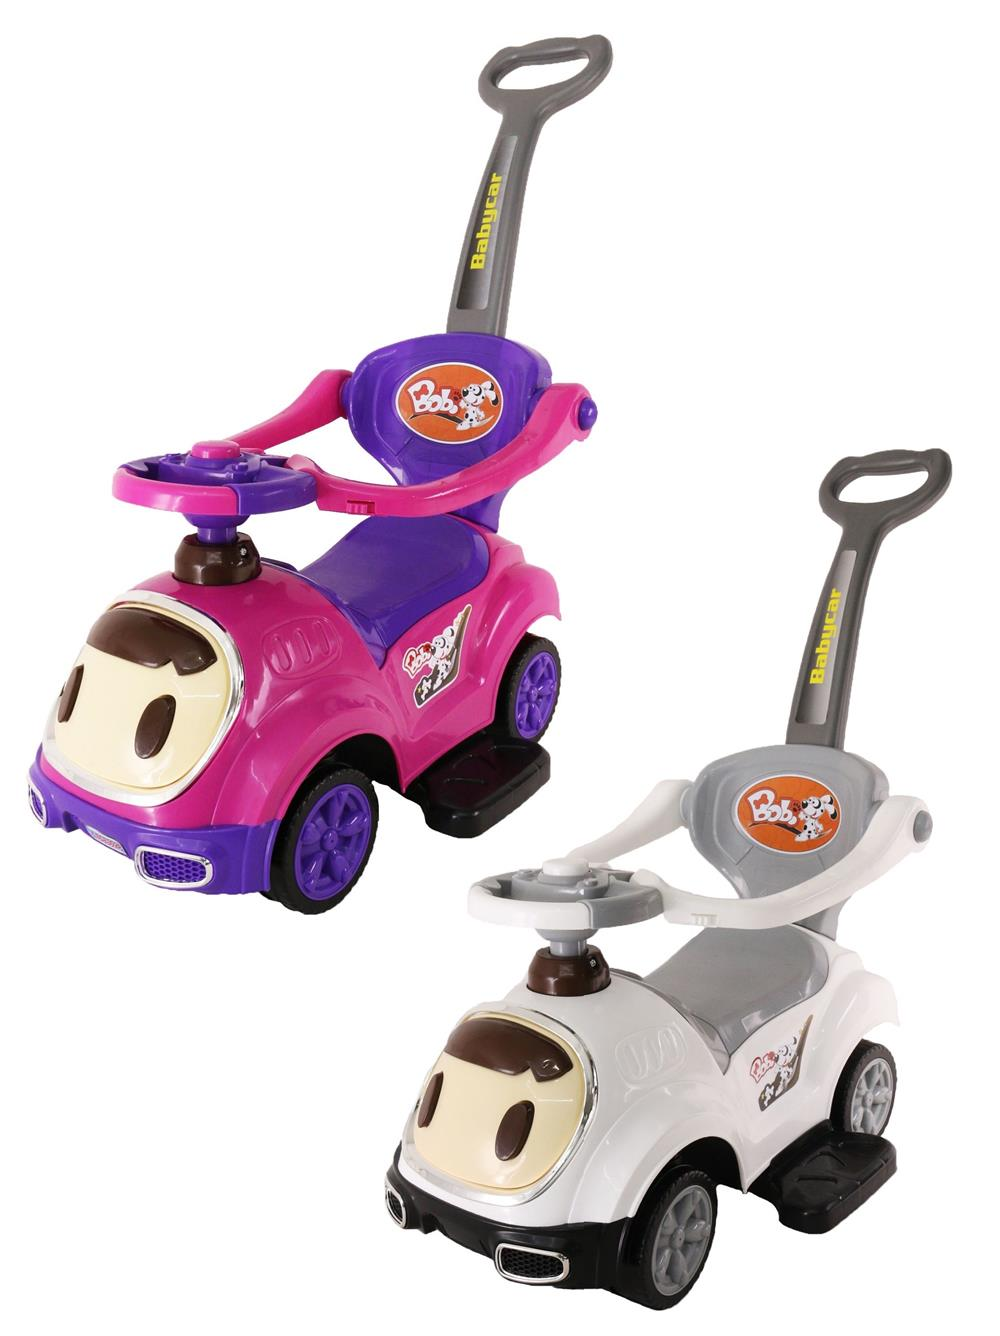 Image result for push car for baby